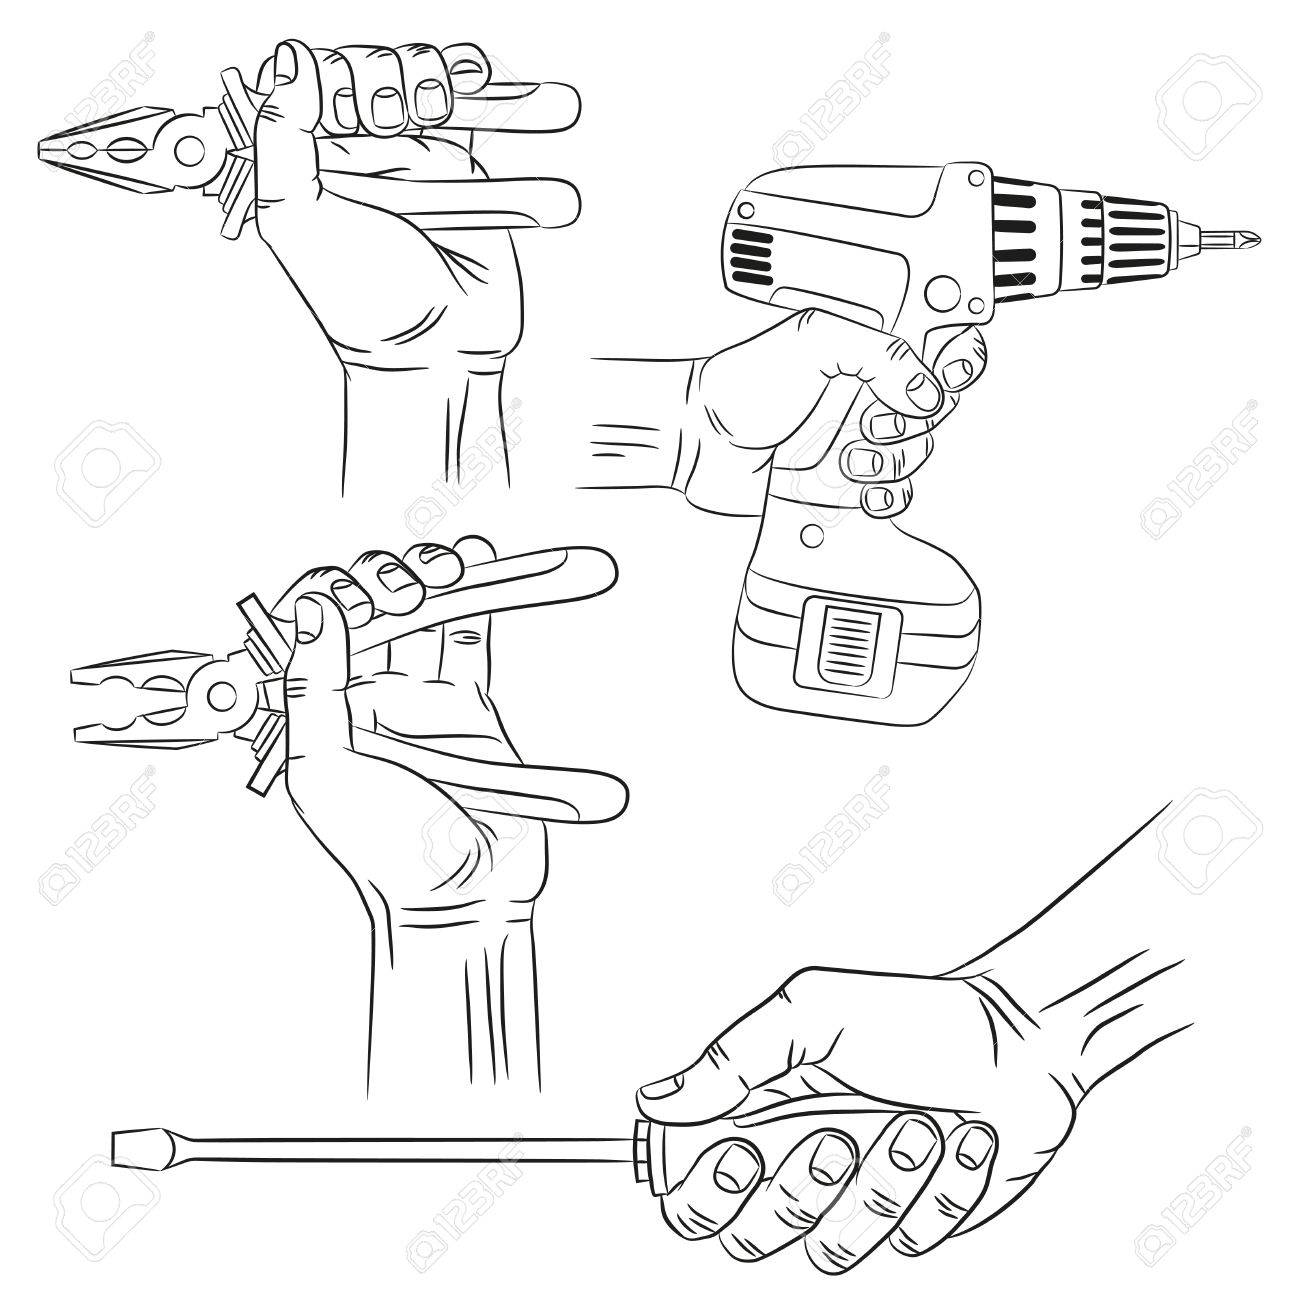 1299x1300 Hands With Tools